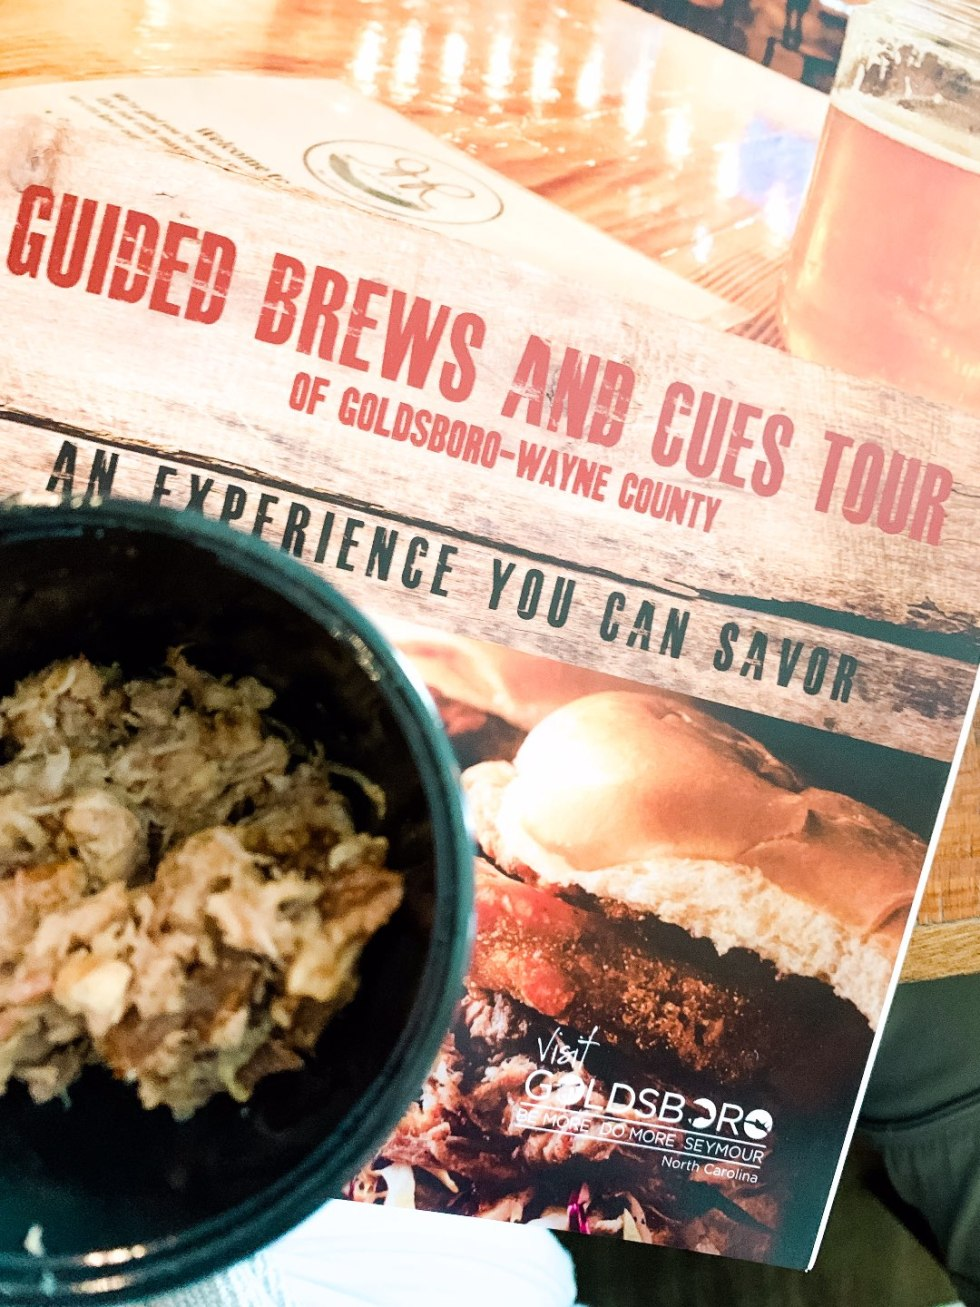 Eastern North Carolina Travel Guide: Top 10 Things to Do in Goldsboro NC by popular North Carolina blog, I'm Fixin' To: image of a Brews and Cues tour booklet.